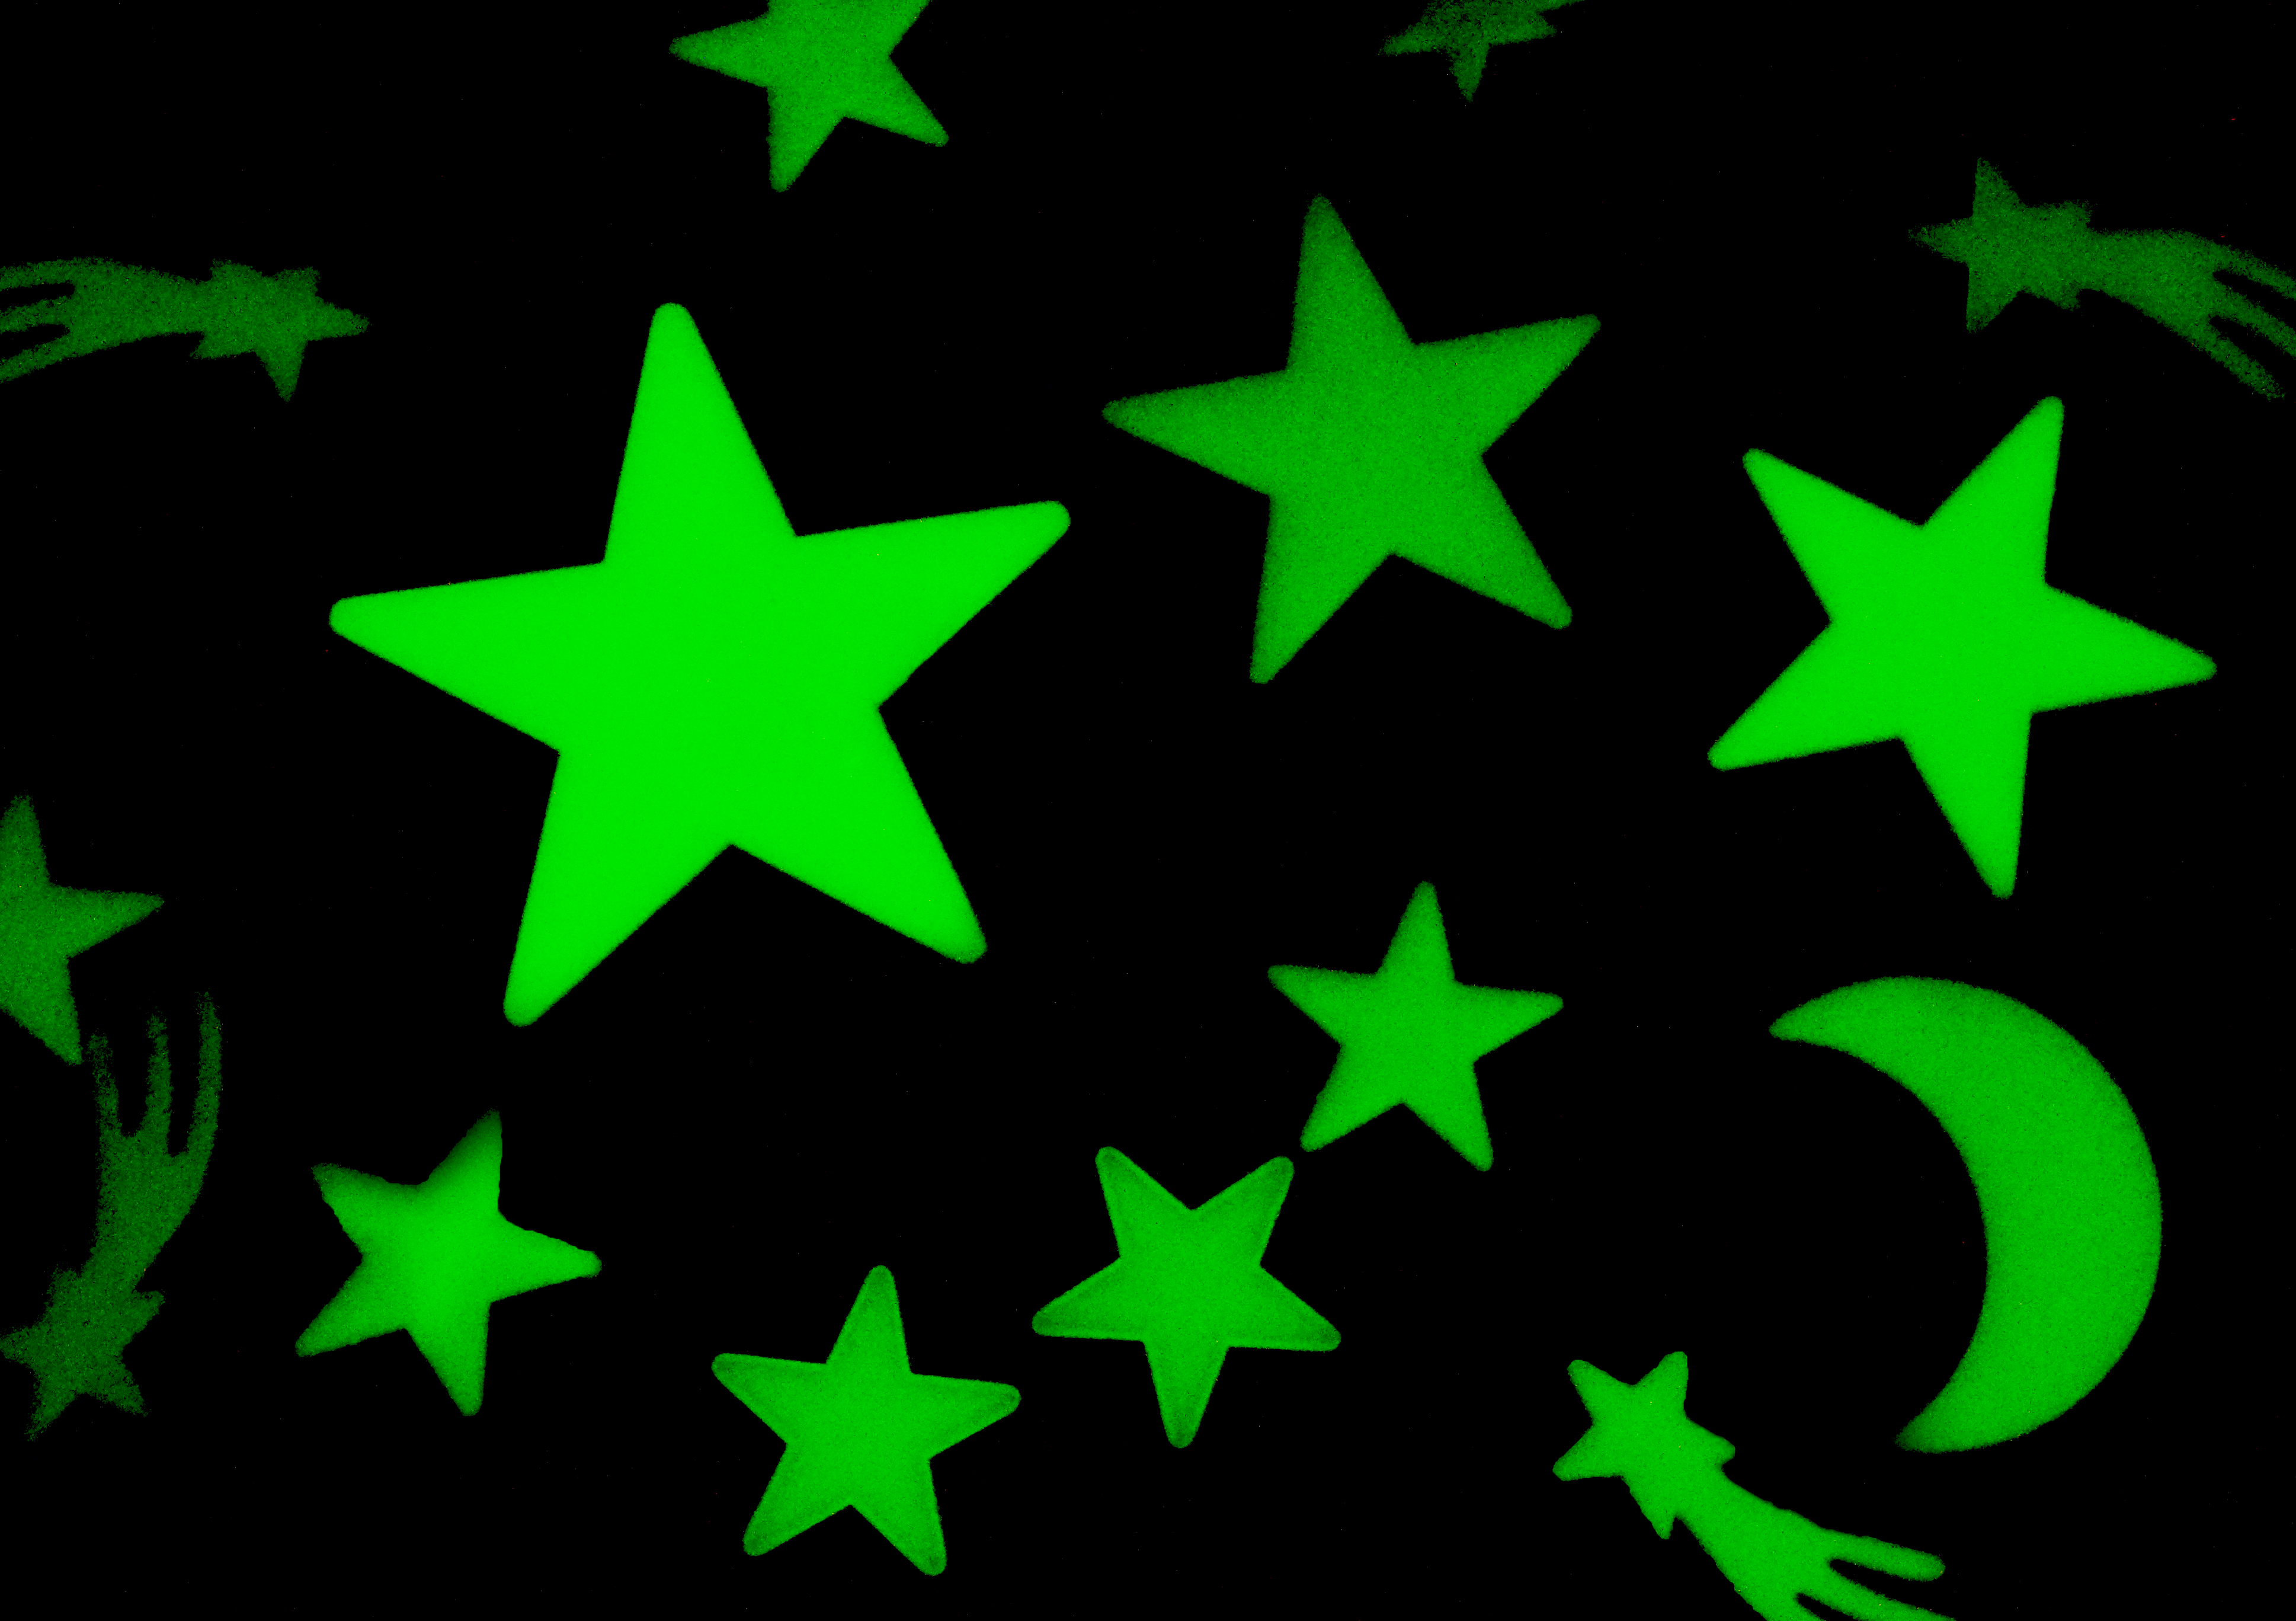 Glow in the Dark Ceiling Stars (Kat, Flickr)